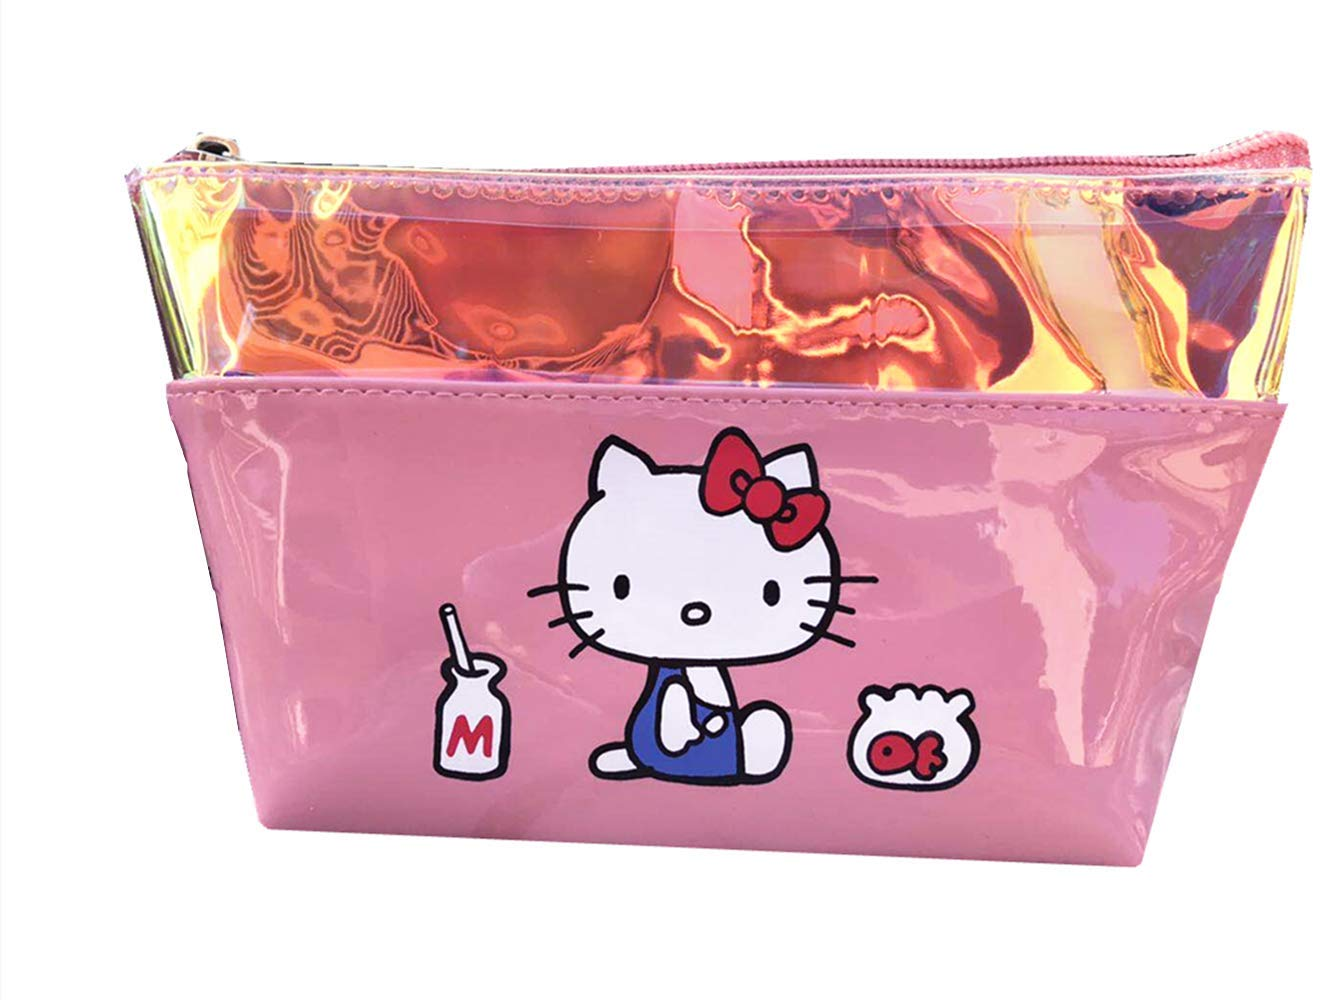 Hello Kitty Cosmetic Bag Makeup Bag for Travel Brushes Hello Kitty Bag for Accessories